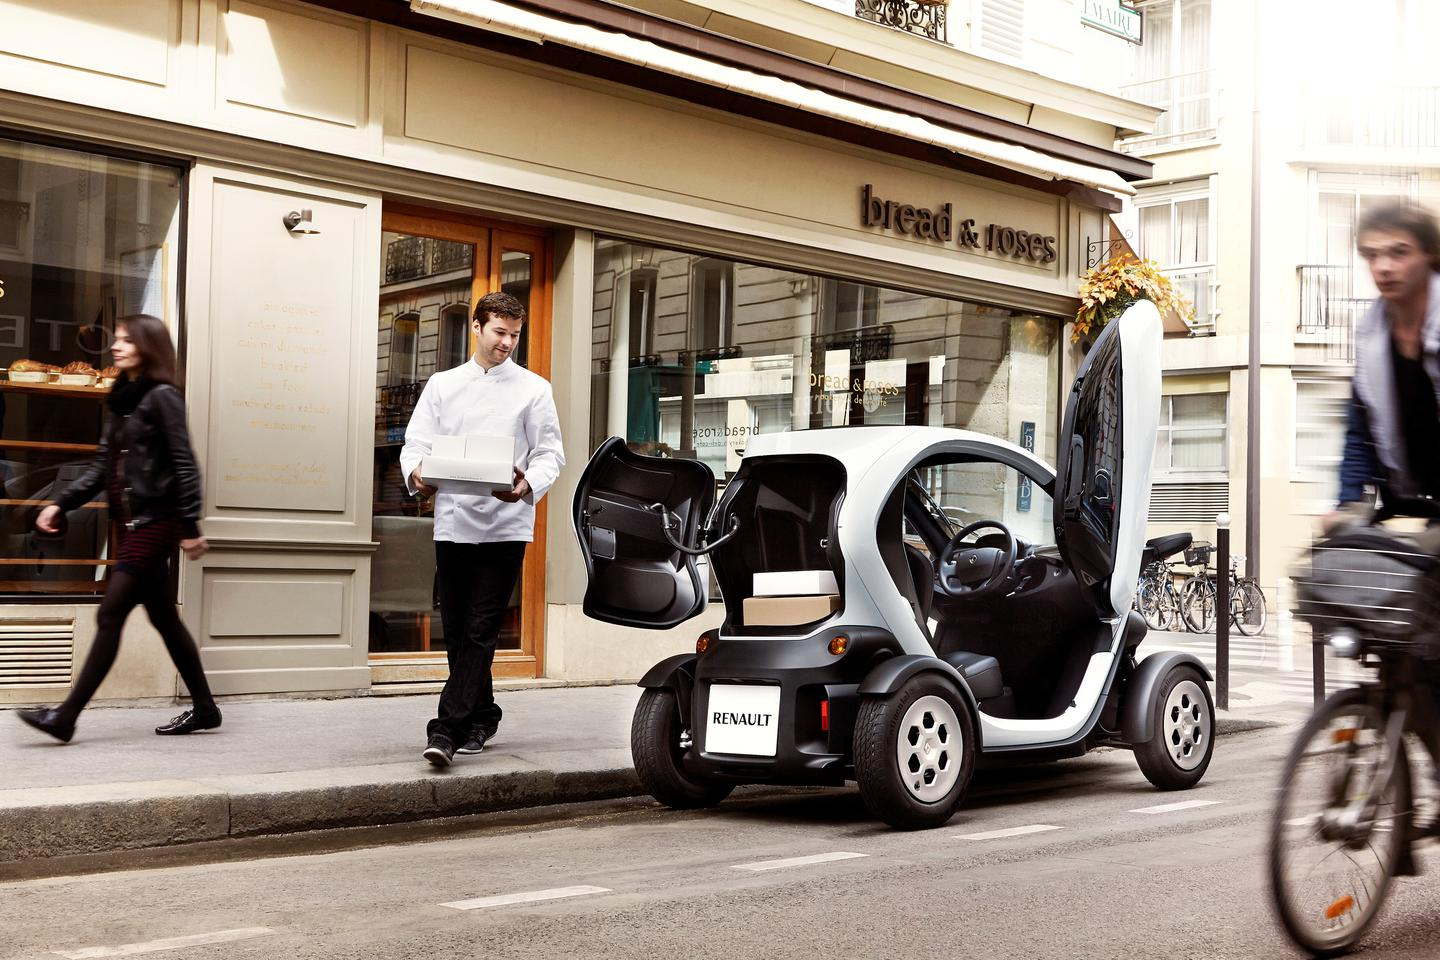 Renault has ripped out the passenger seat and modified the rear end cut-out to make a Cargo edition of its Twizy battery electric vehicle